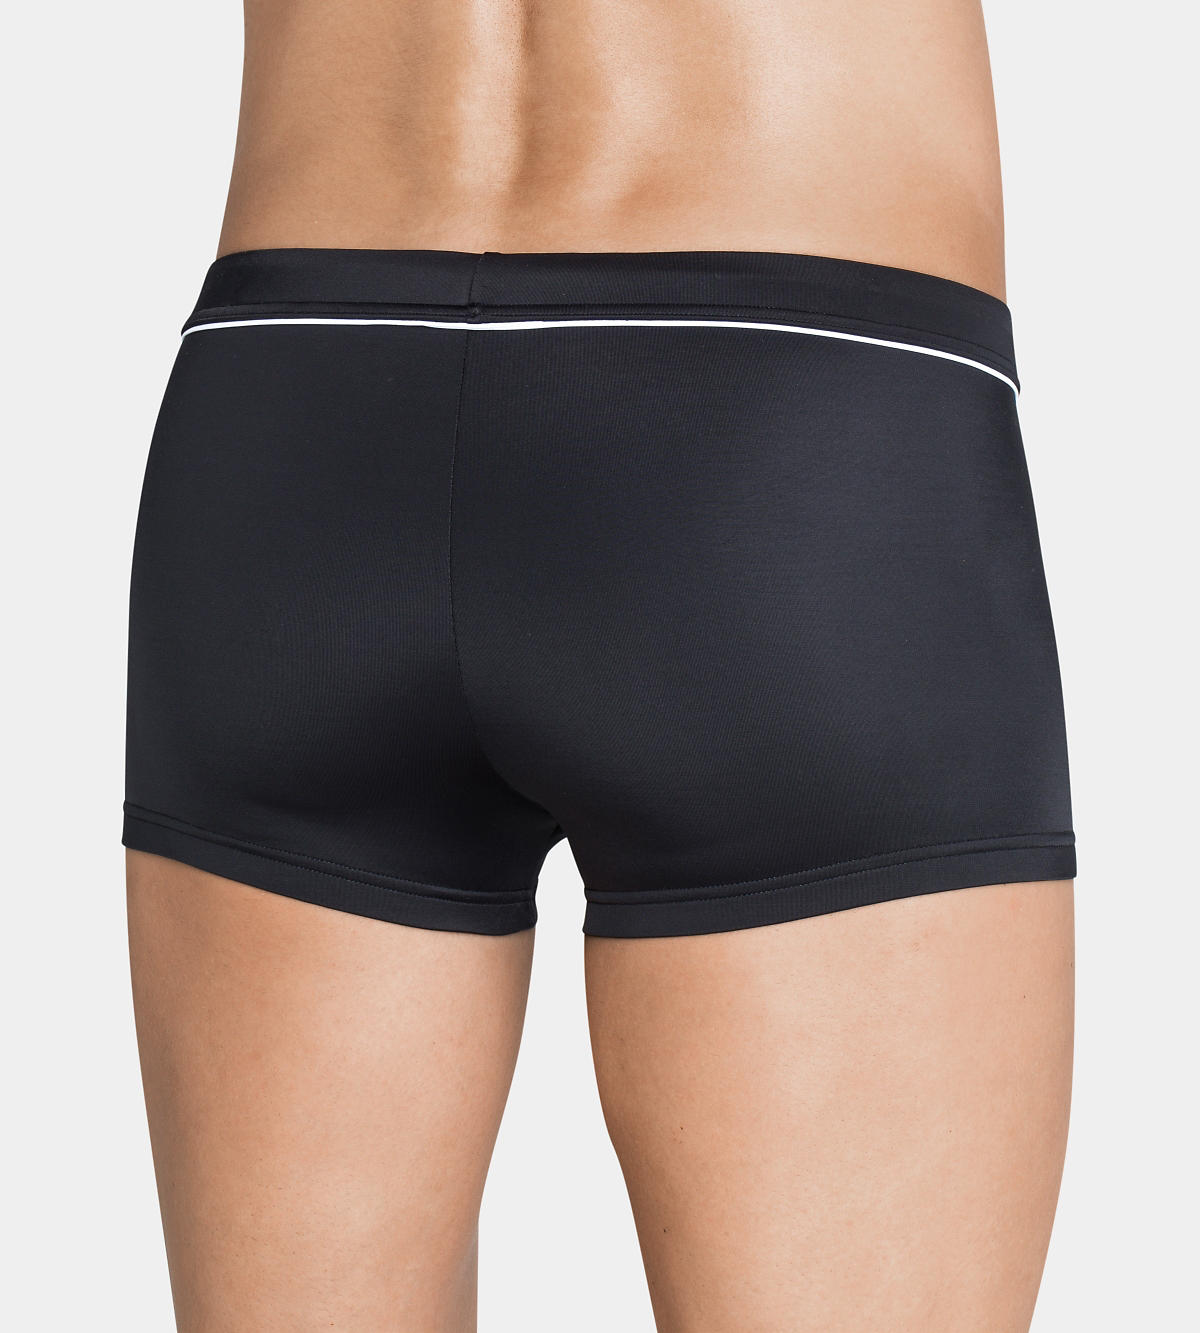 SLOGGI SWIM BLACK SHADOWS